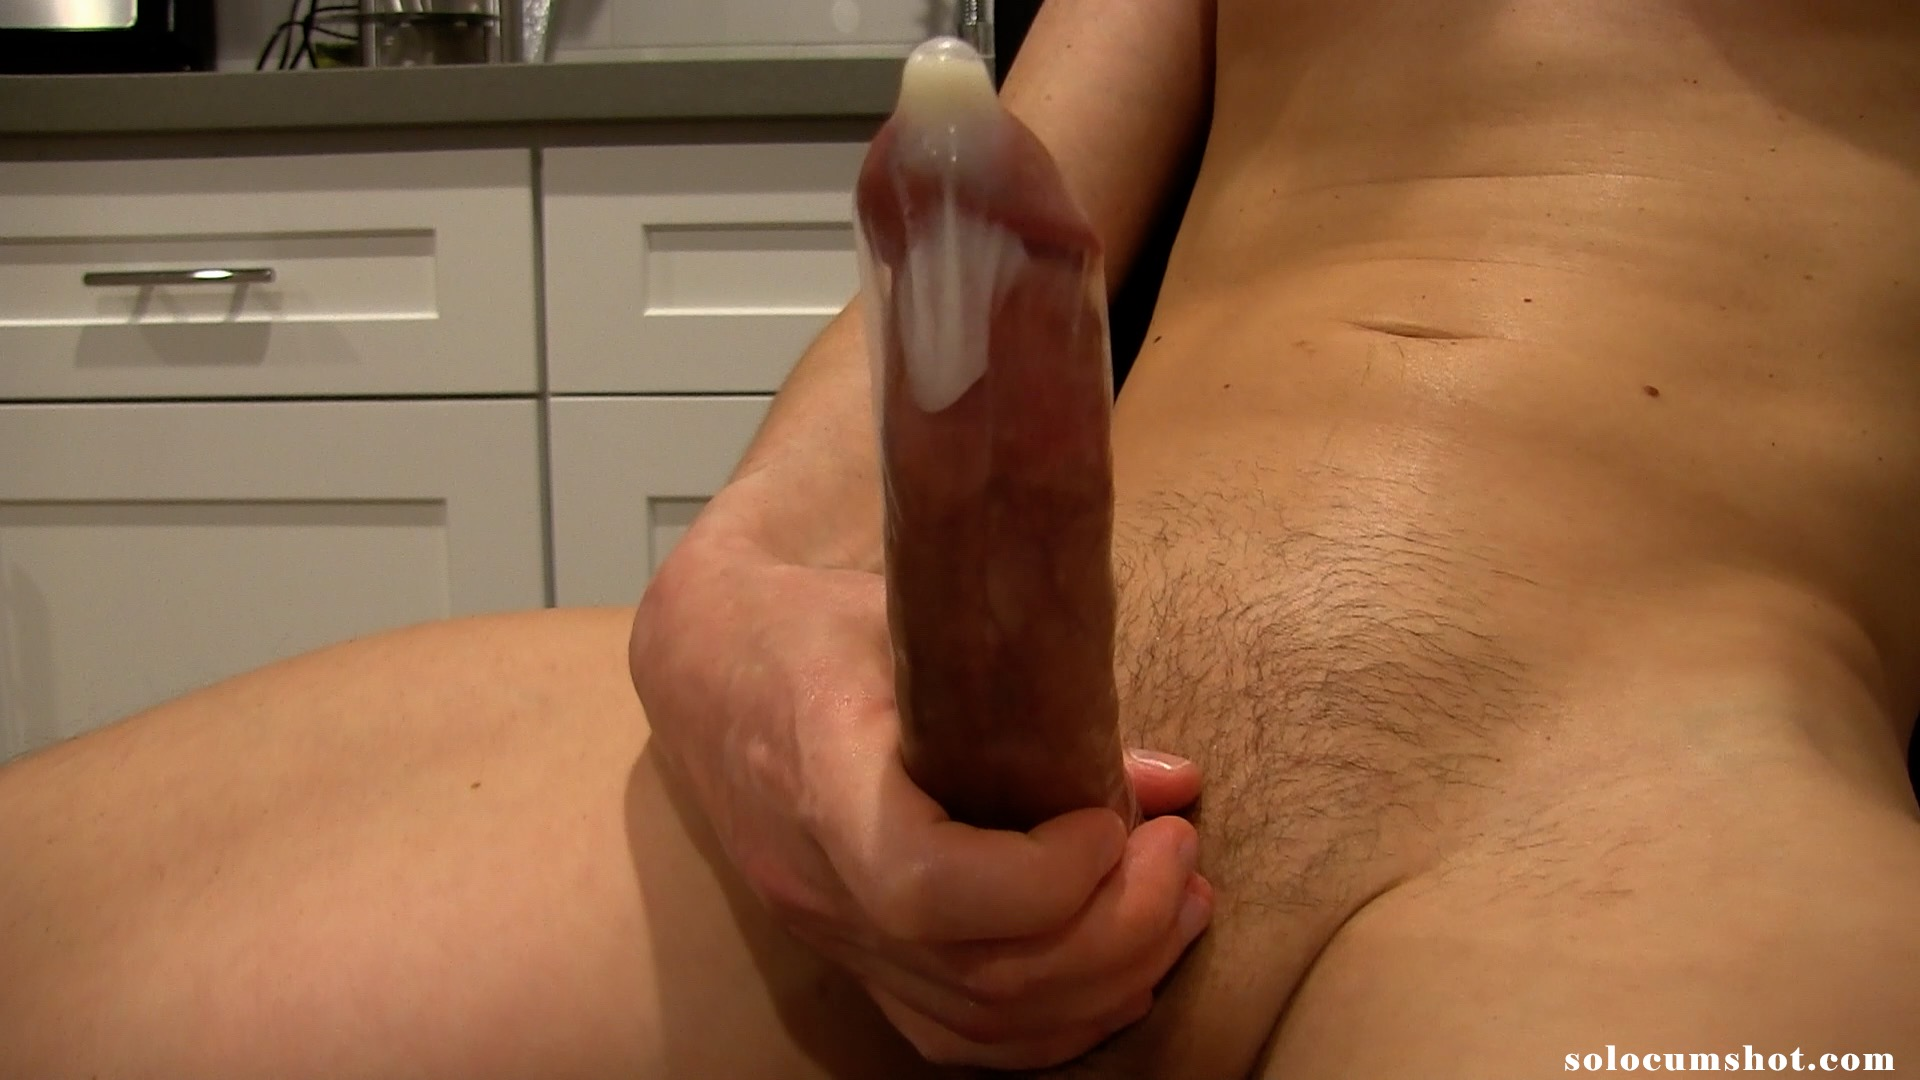 My First Time Jerking Off